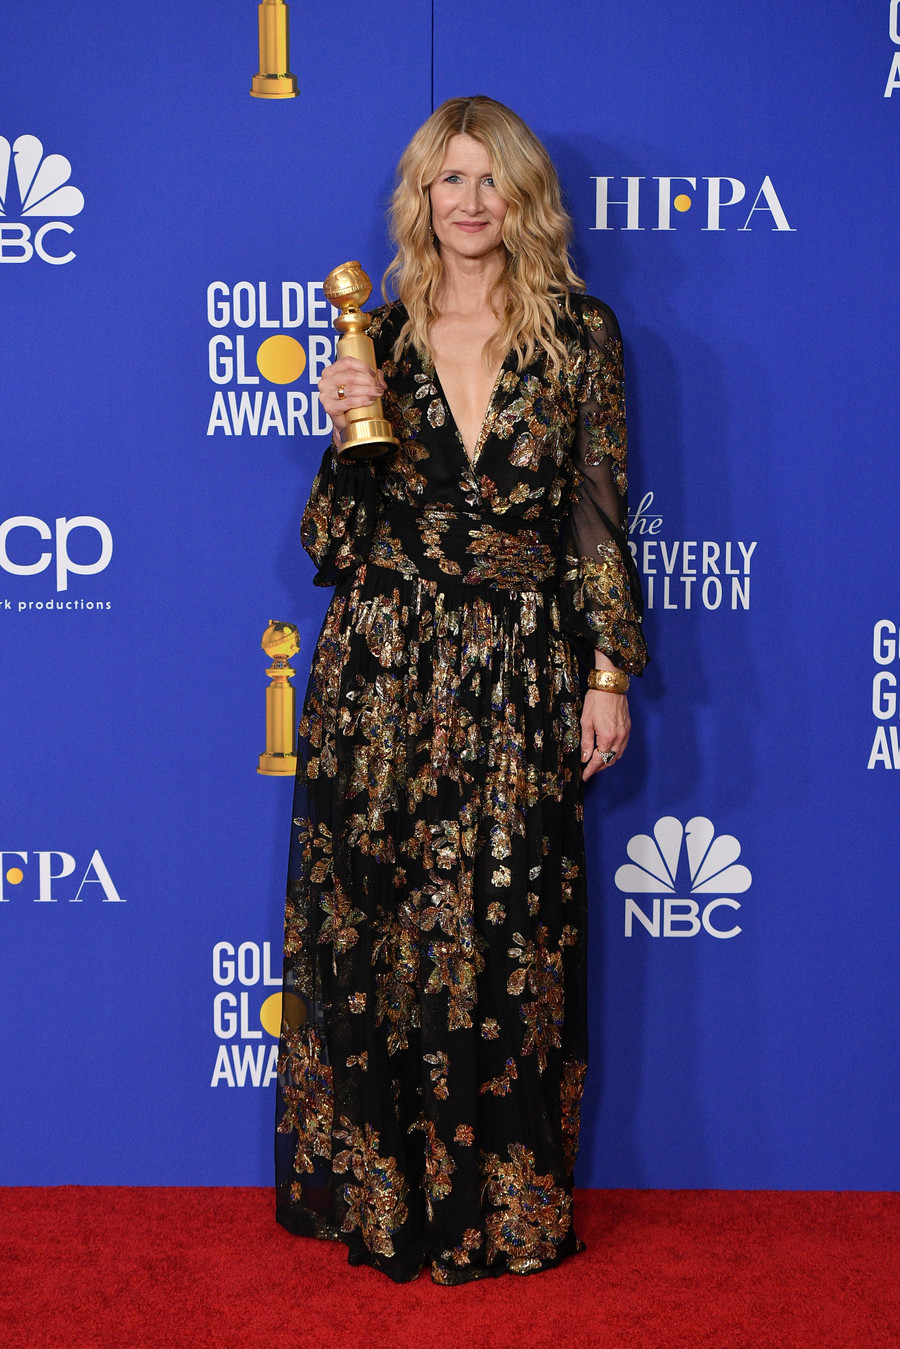 Laura Dern / George Pimentel / Getty Images